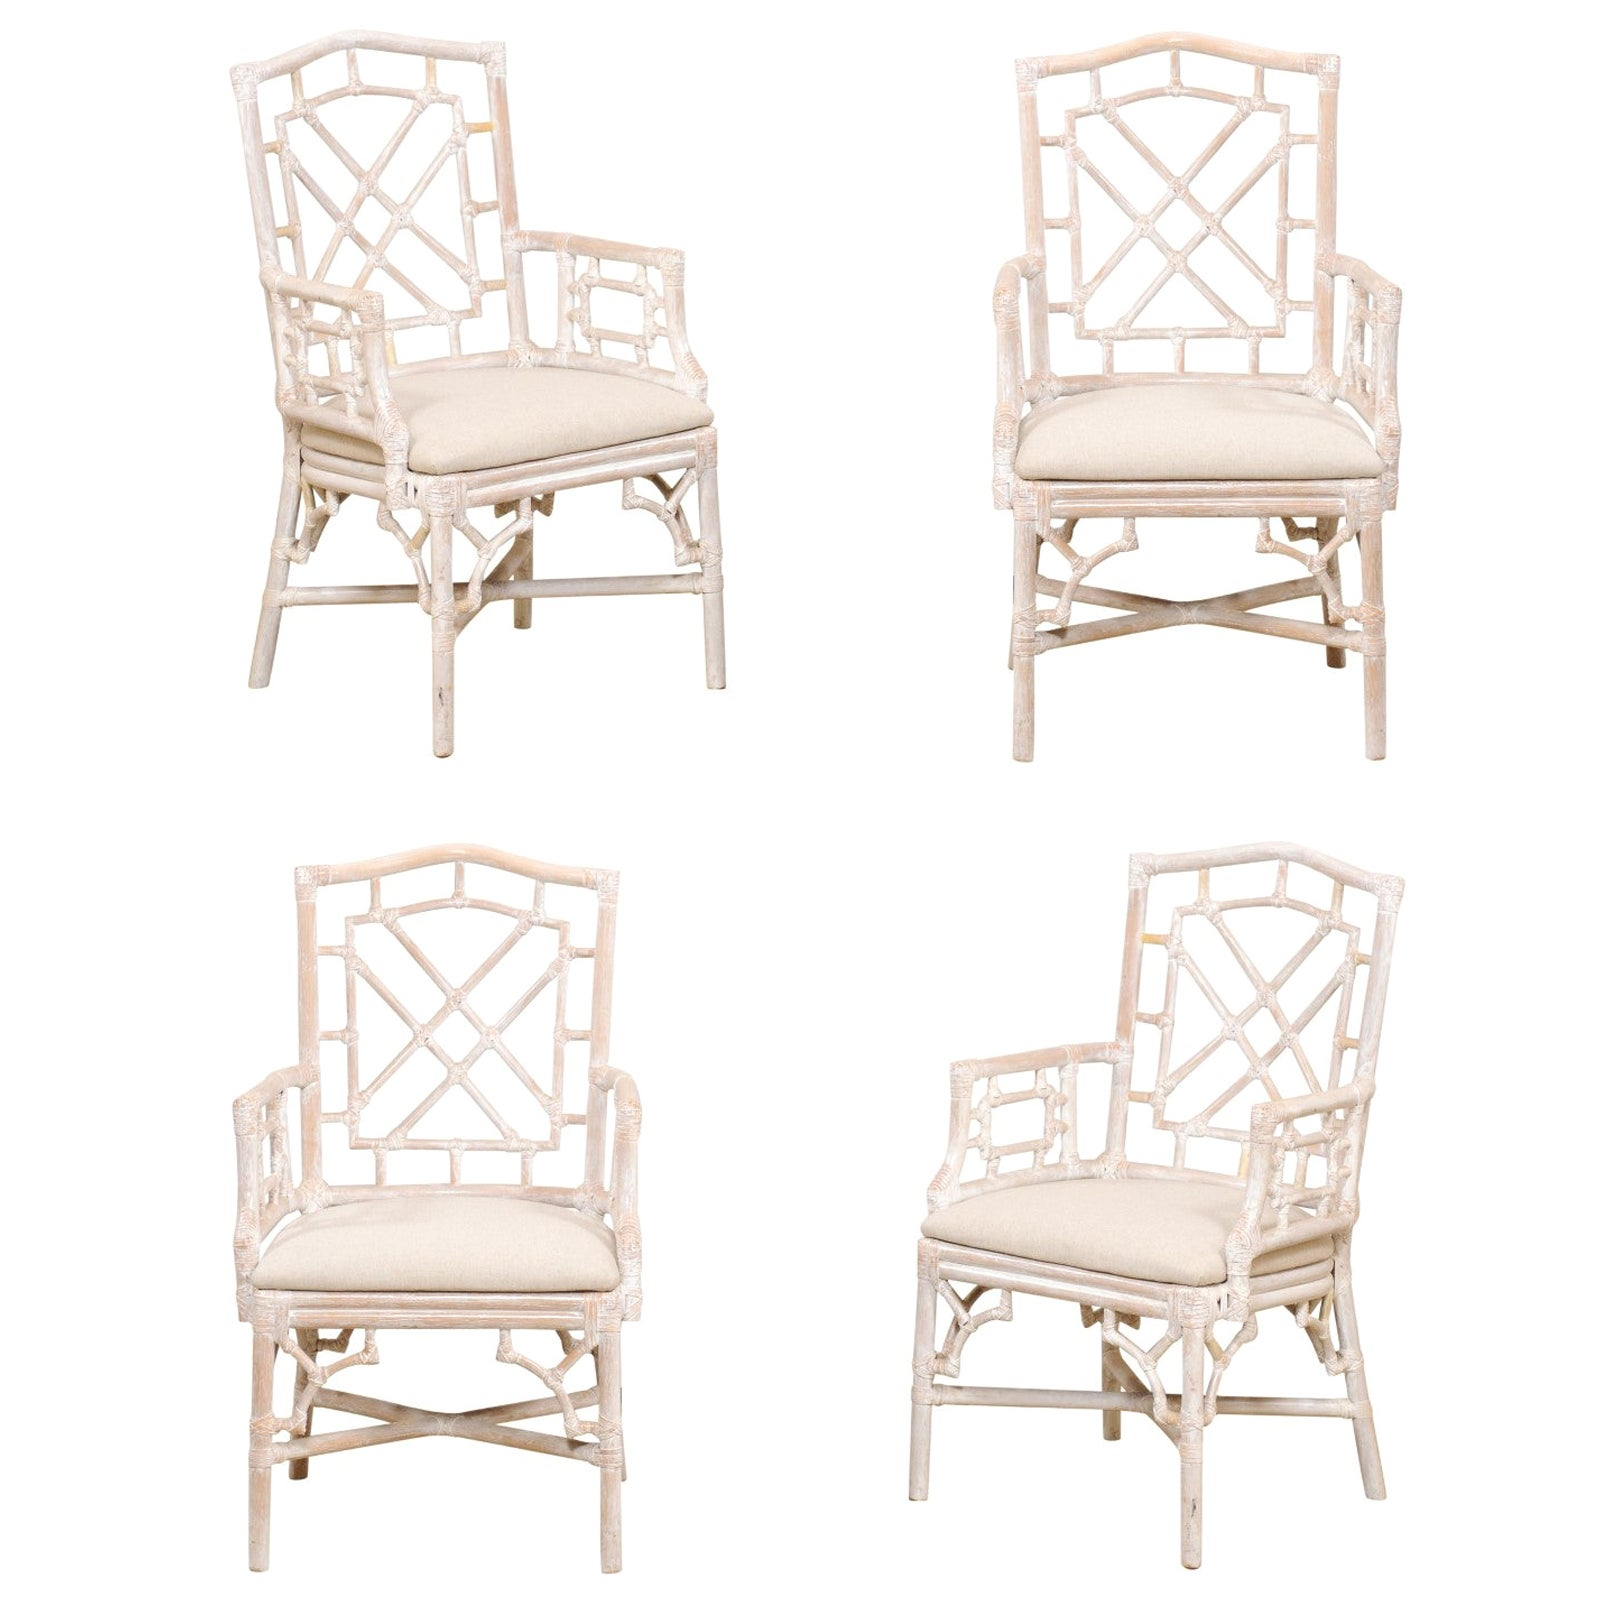 Set of 4 Vintage Faux Bamboo Carved Armchairs with Newly Upholstered Seats